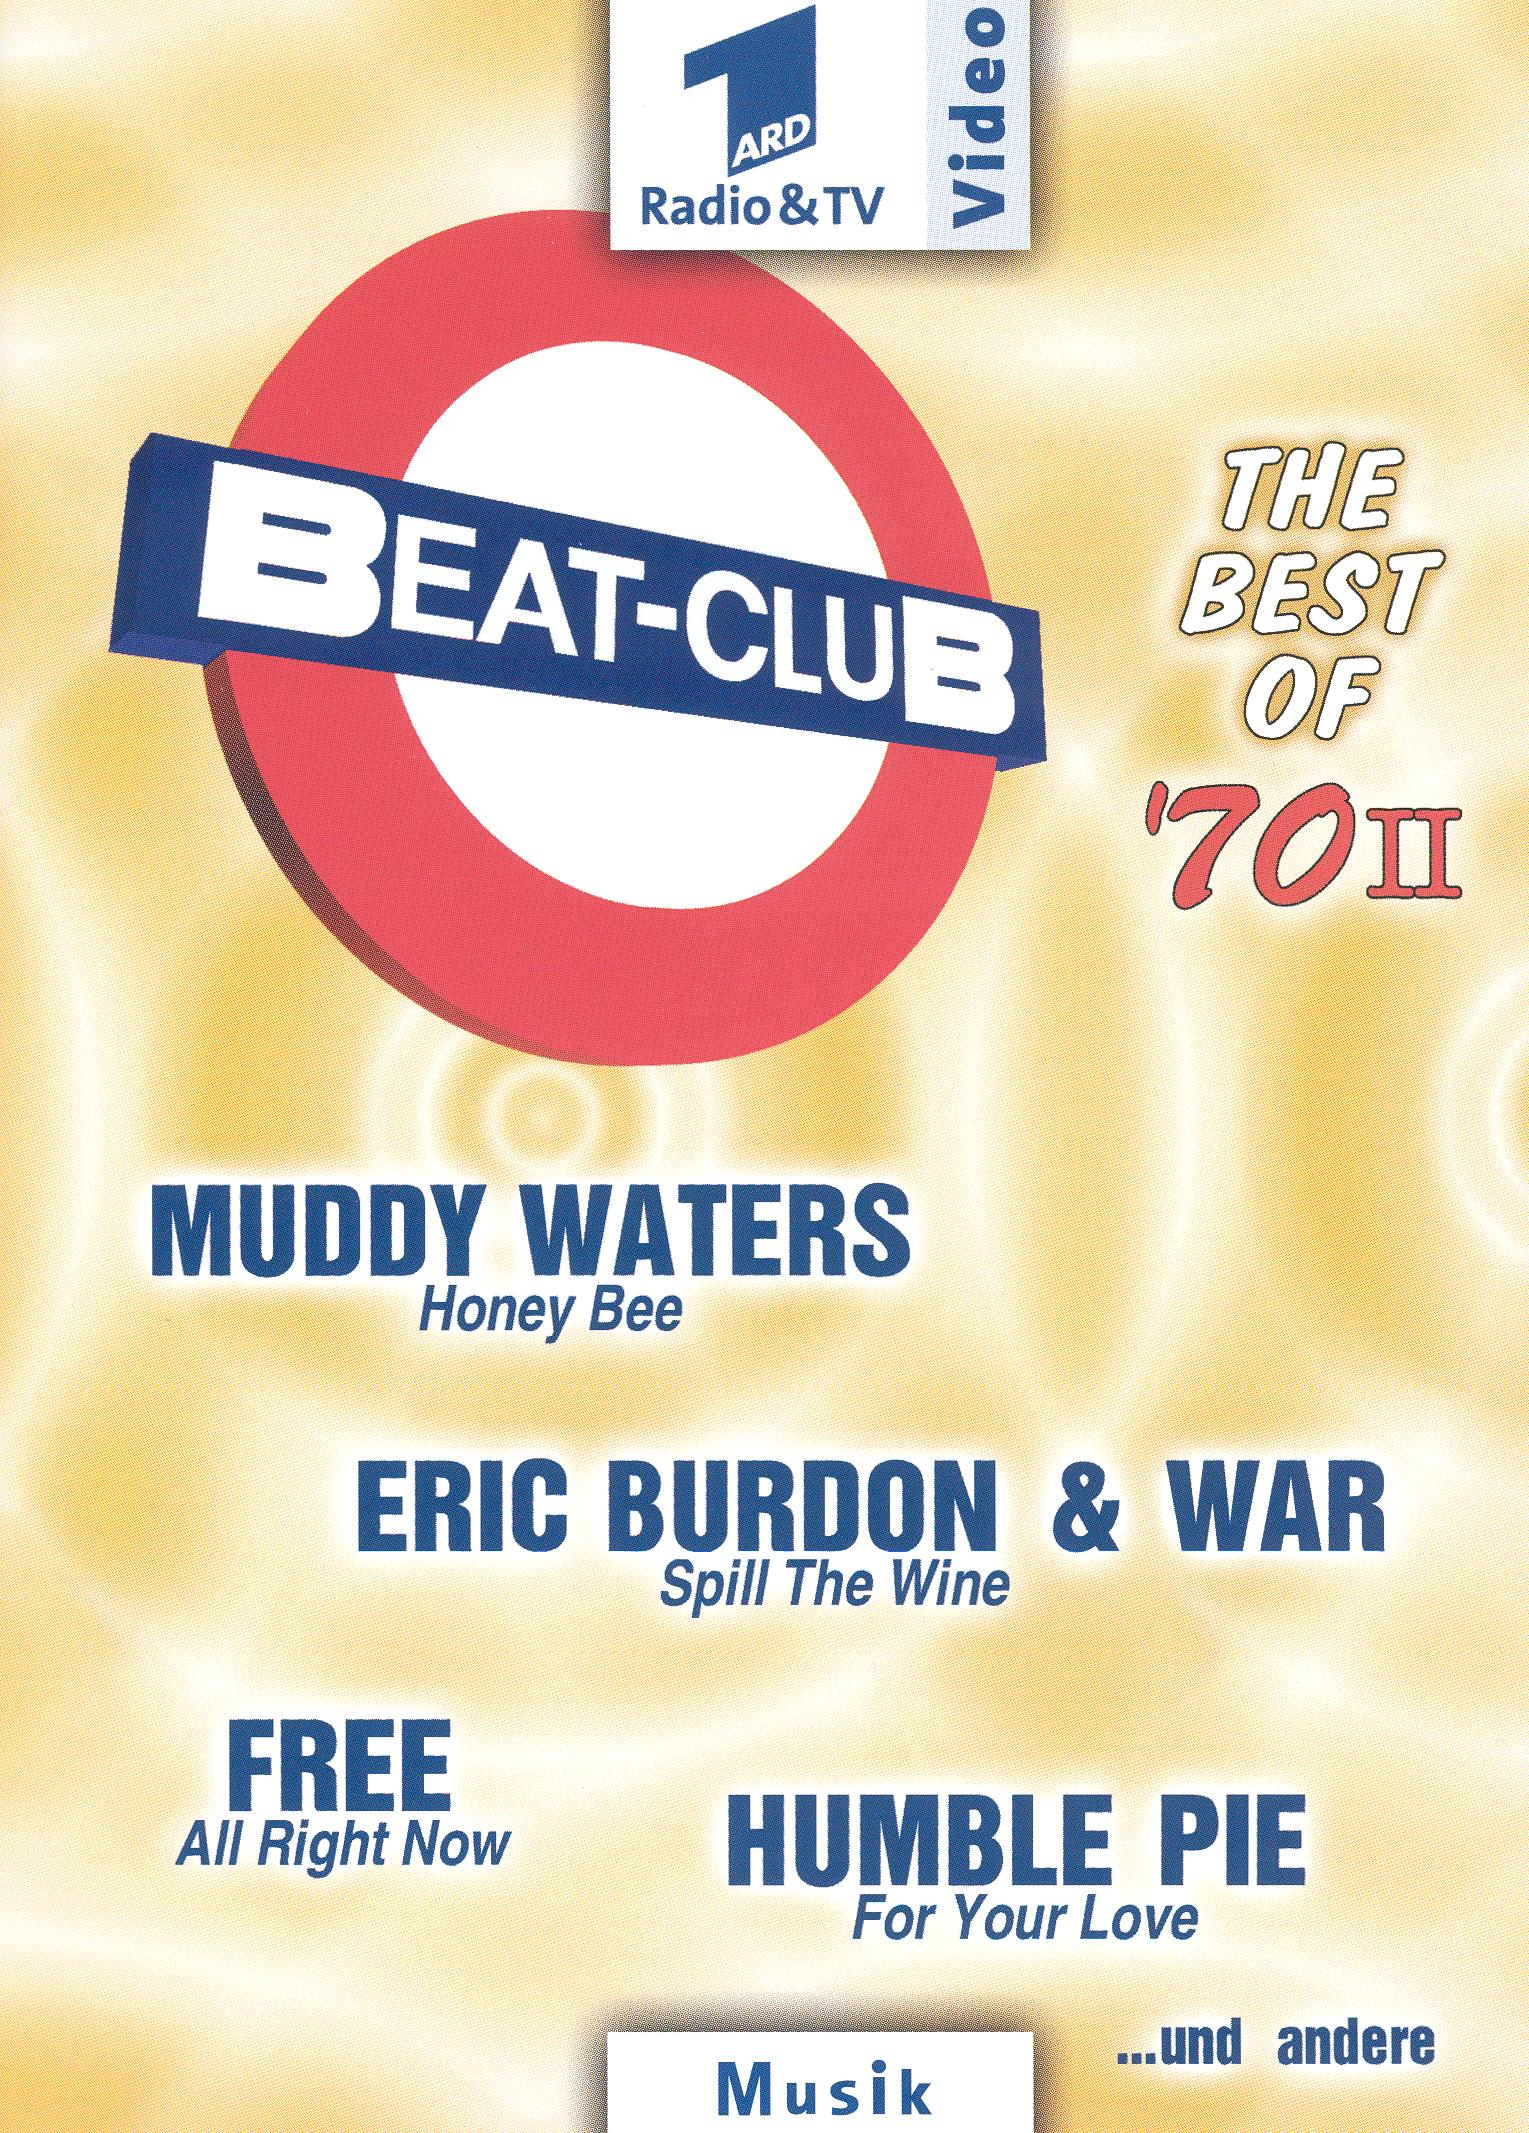 The Beat-Club: The Best of '70, Vol. 2